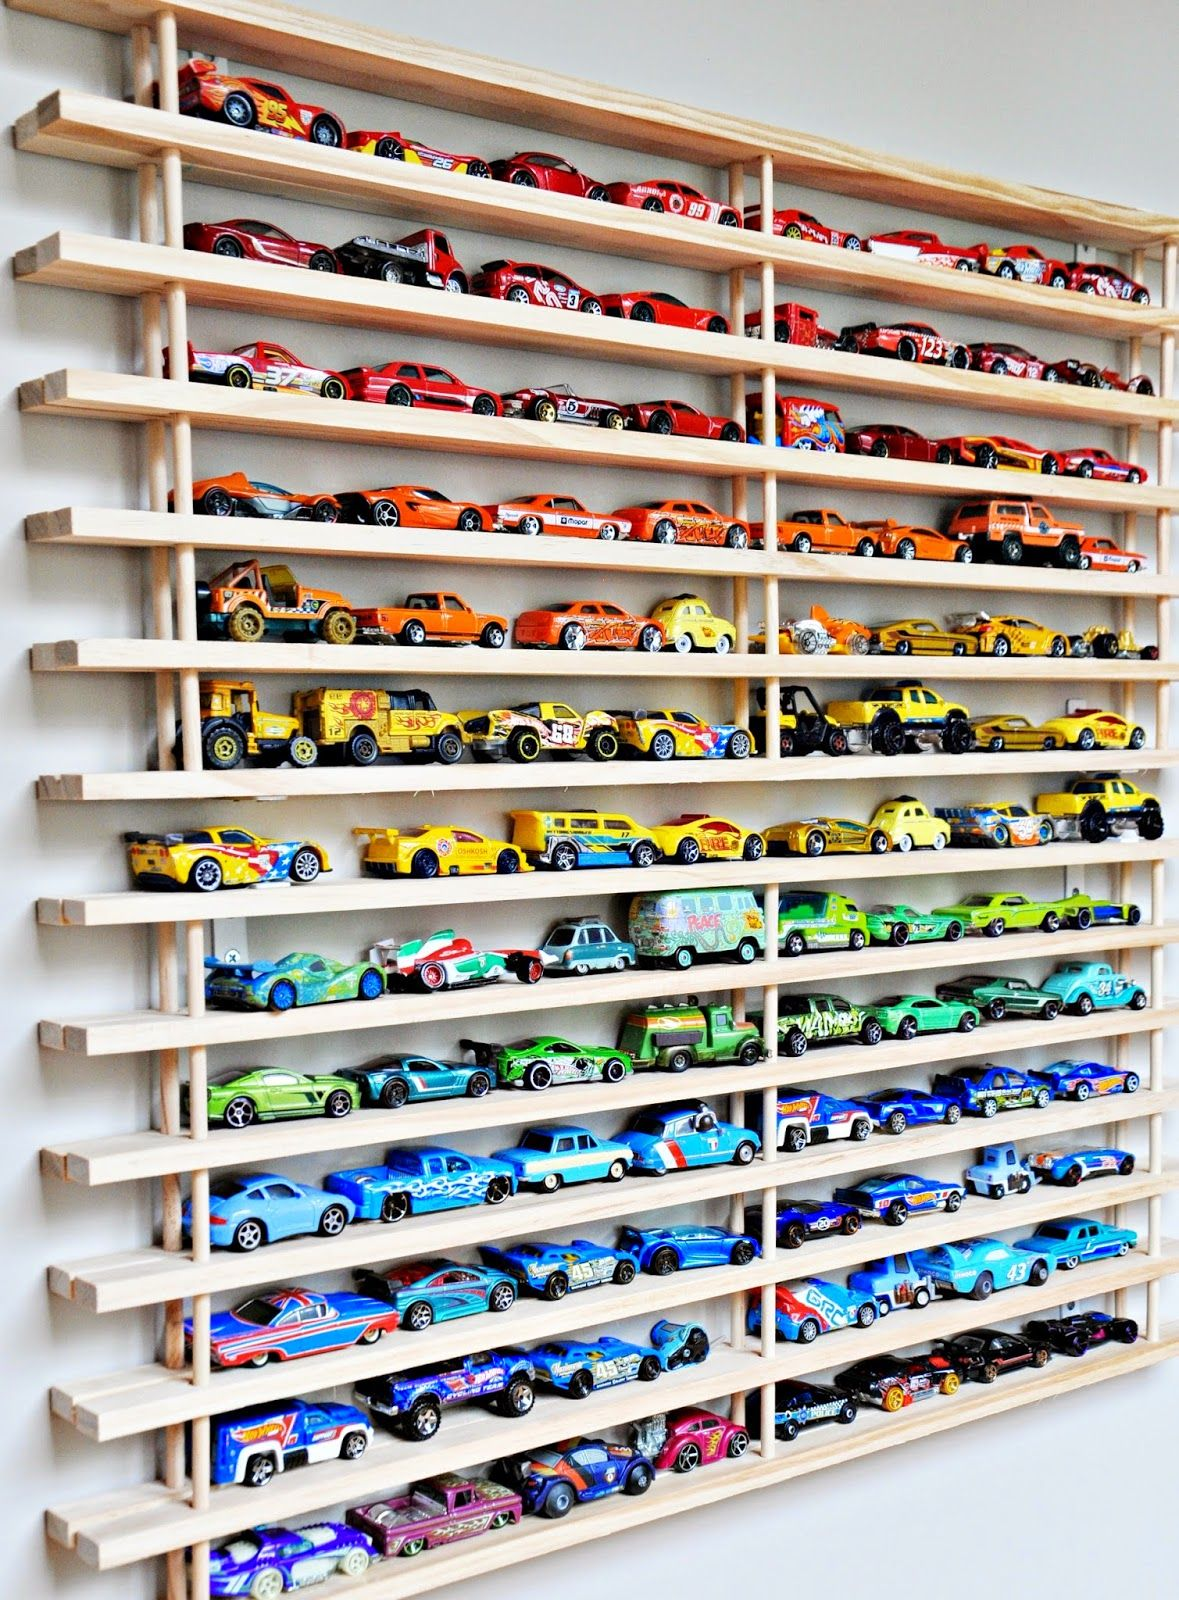 30 Awesome Toy Storage Ideas | Kinderzimmer, Regale bauen und ...